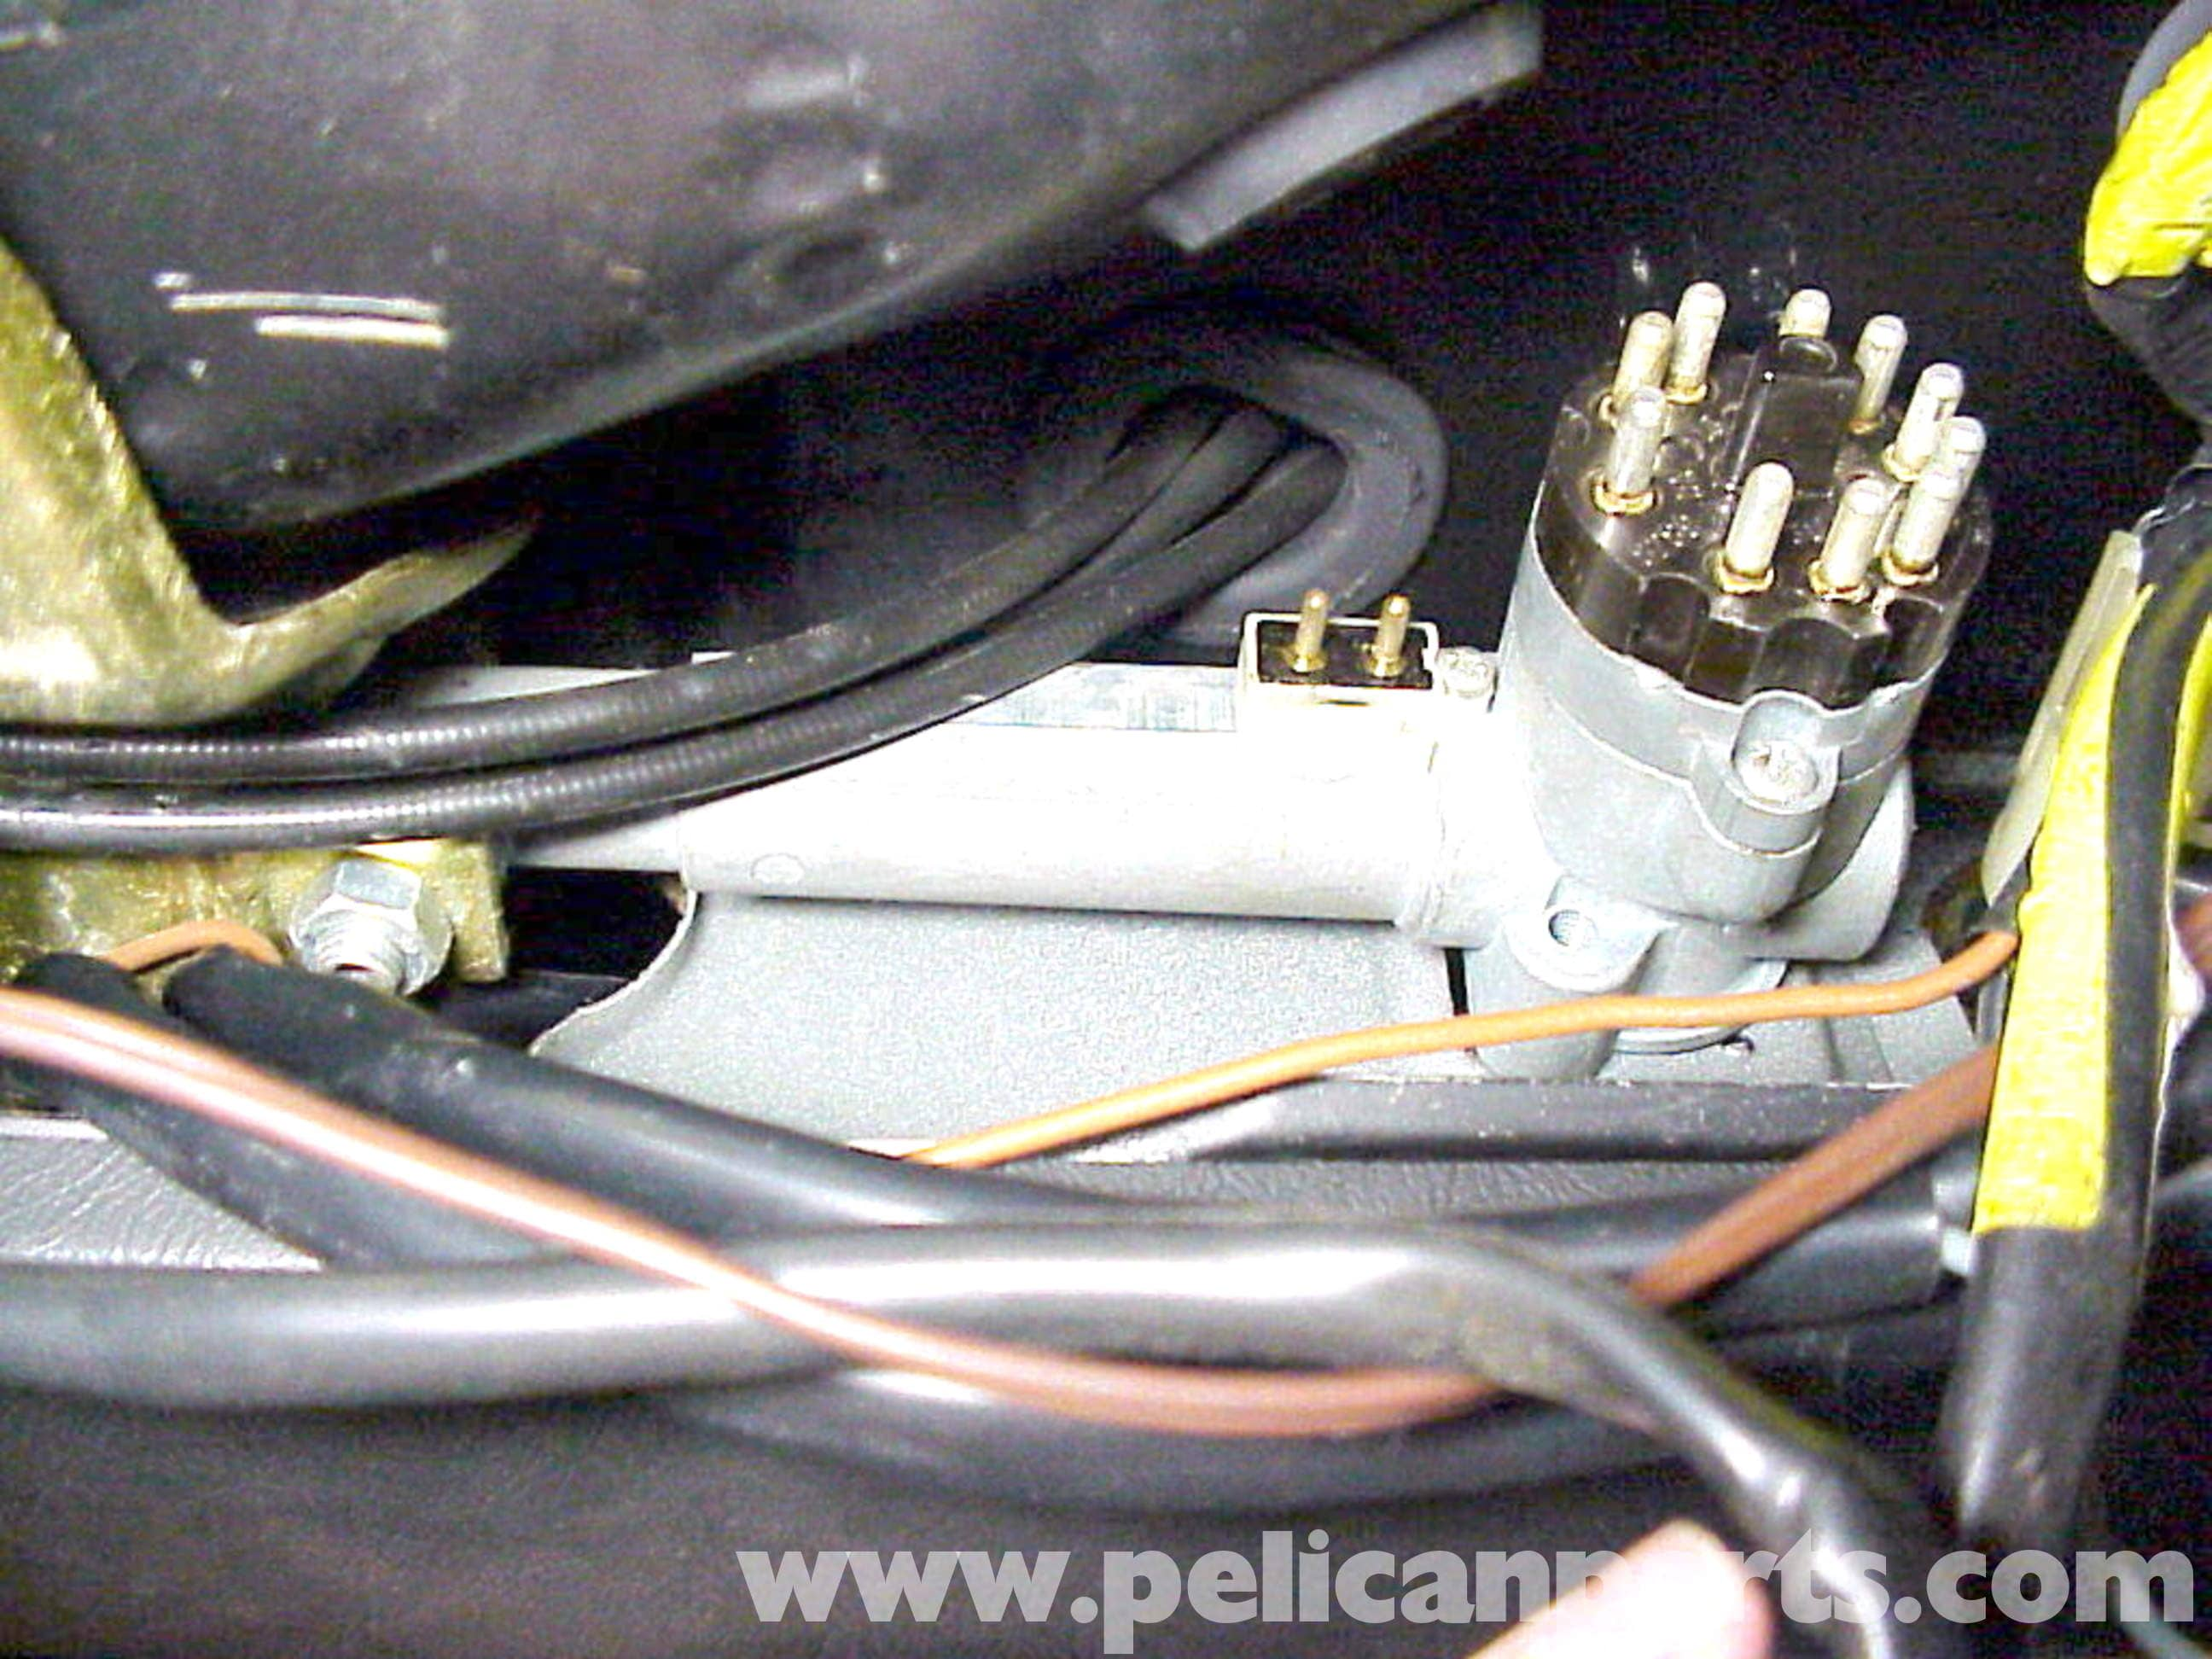 Porsche 911 Ignition Switch Replacement 1965 89 930 Turbo 1979 924 Wiring Diagram Large Image Extra